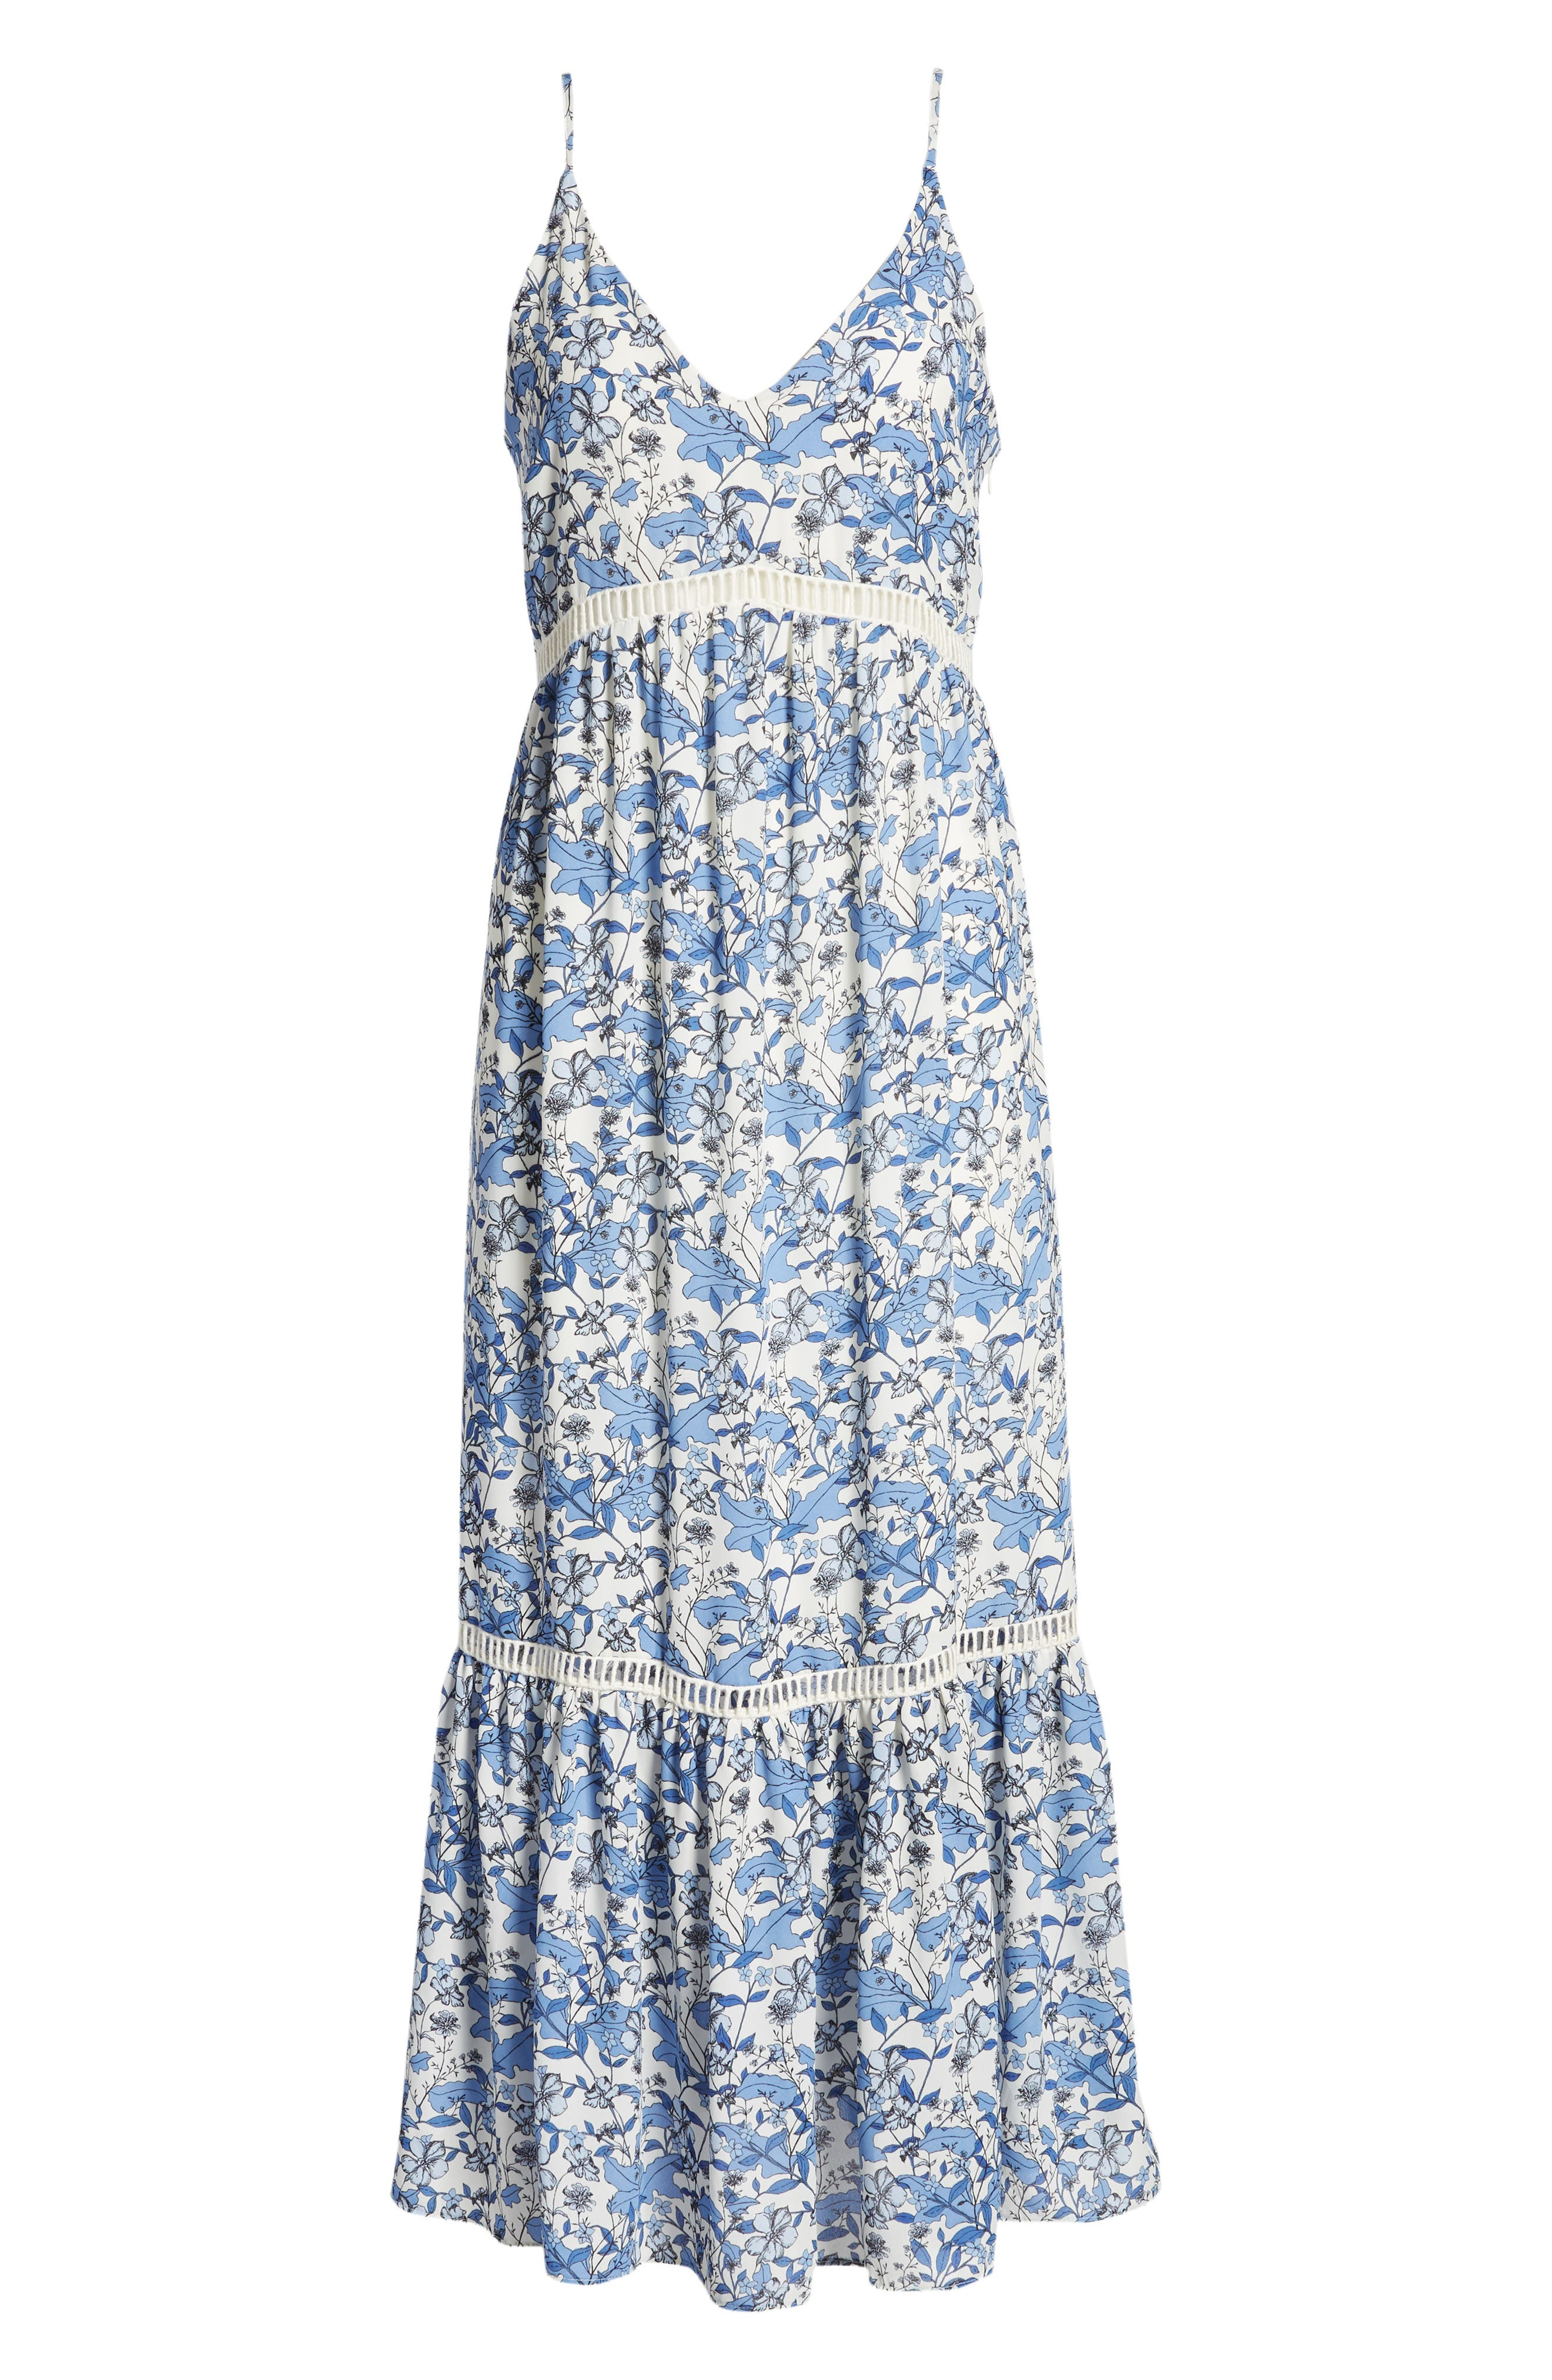 Ivy Forest Maxi Dress,                             Alternate thumbnail 18, color,